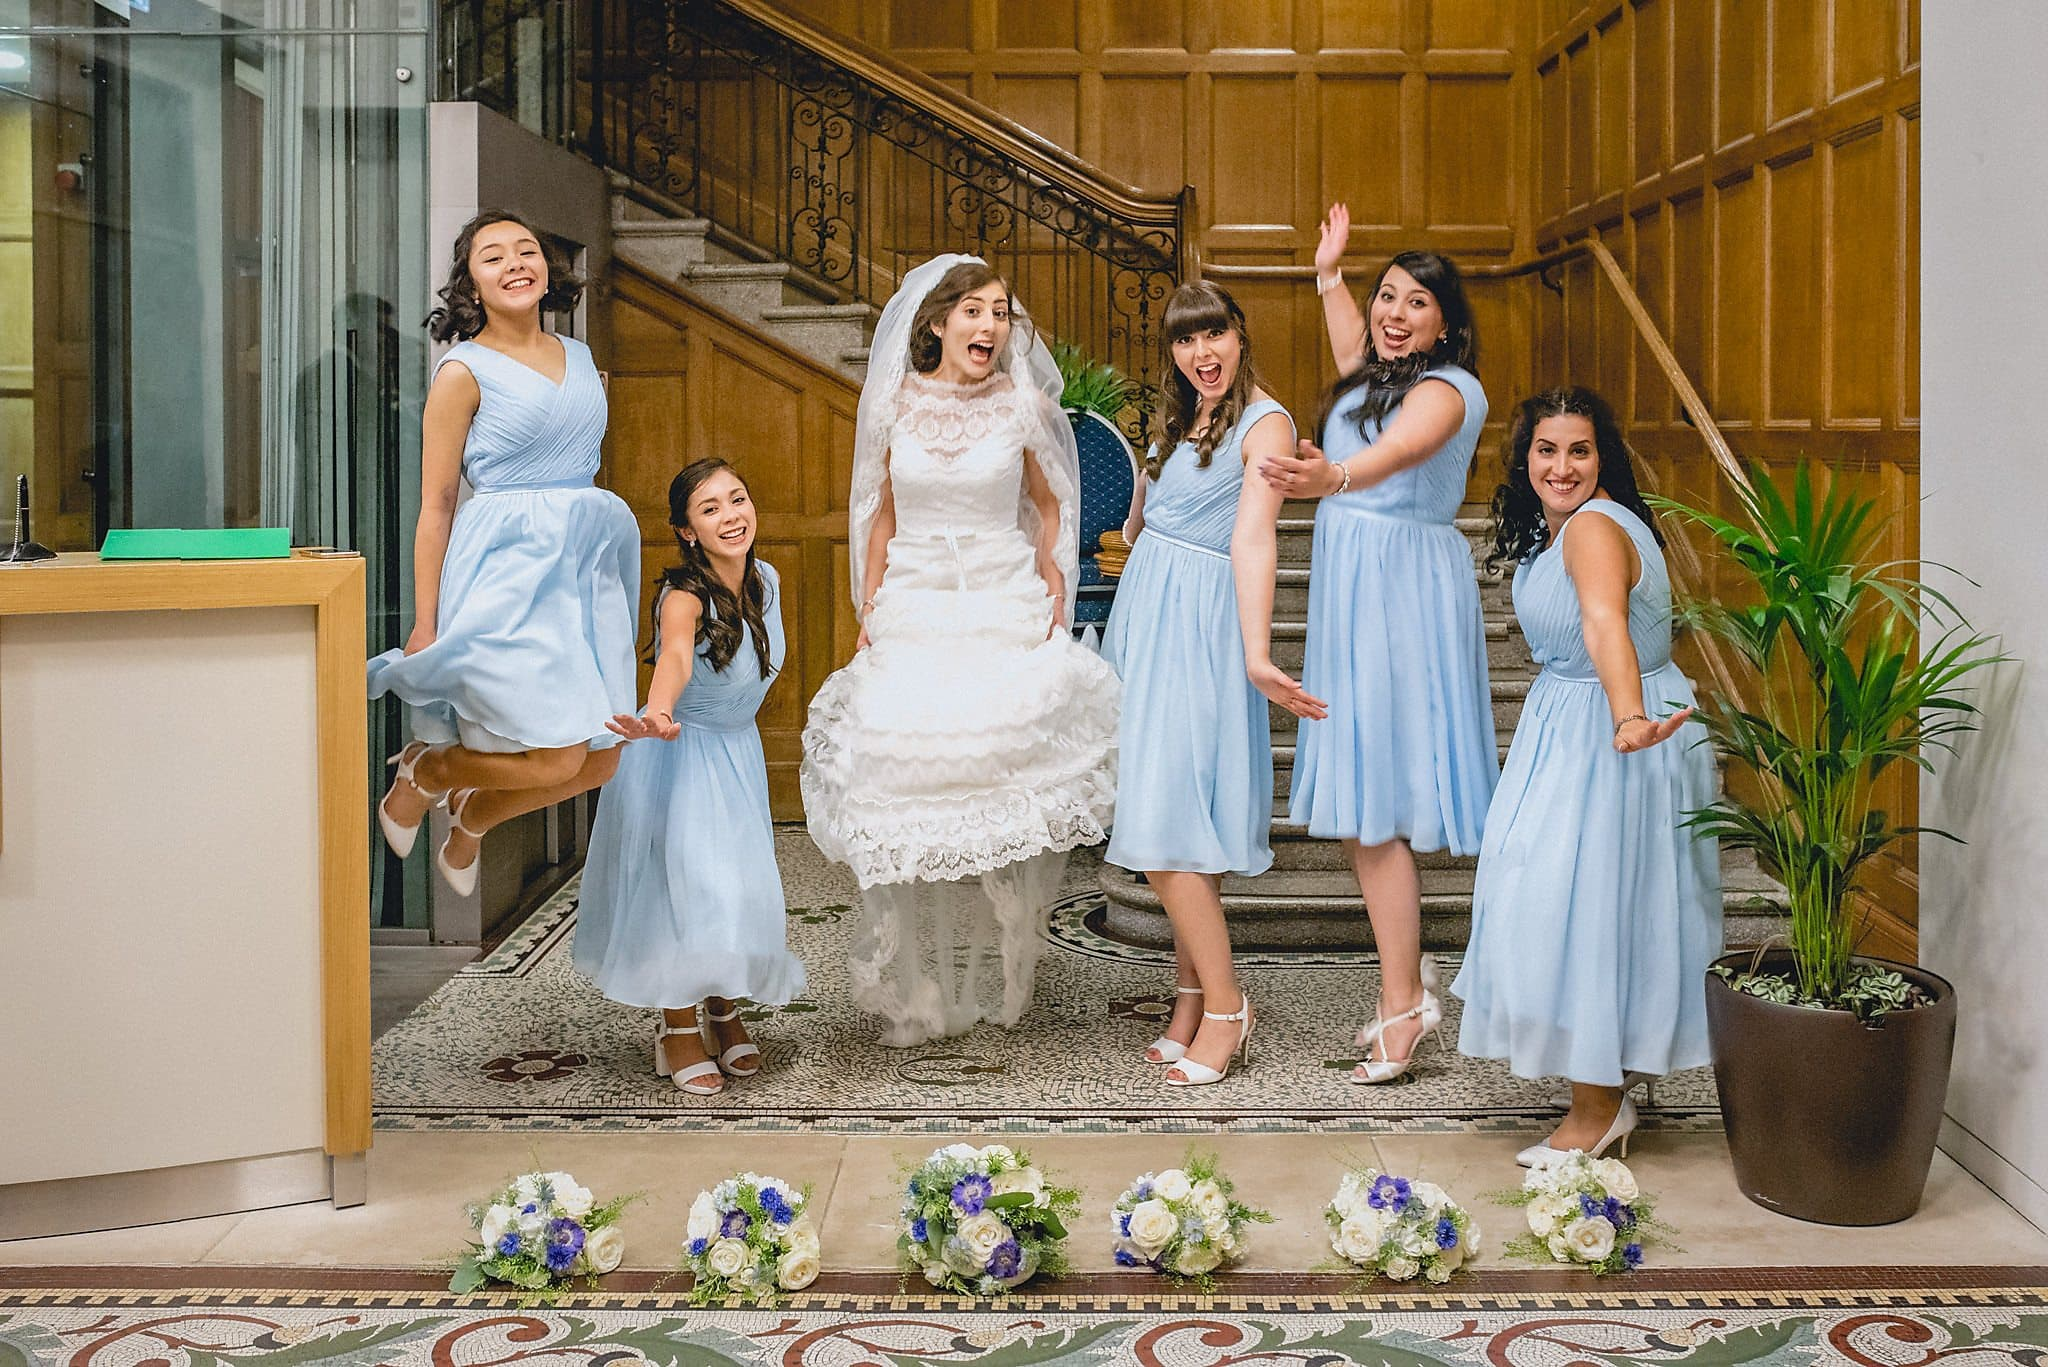 Bride and bridesmaids jump in the air